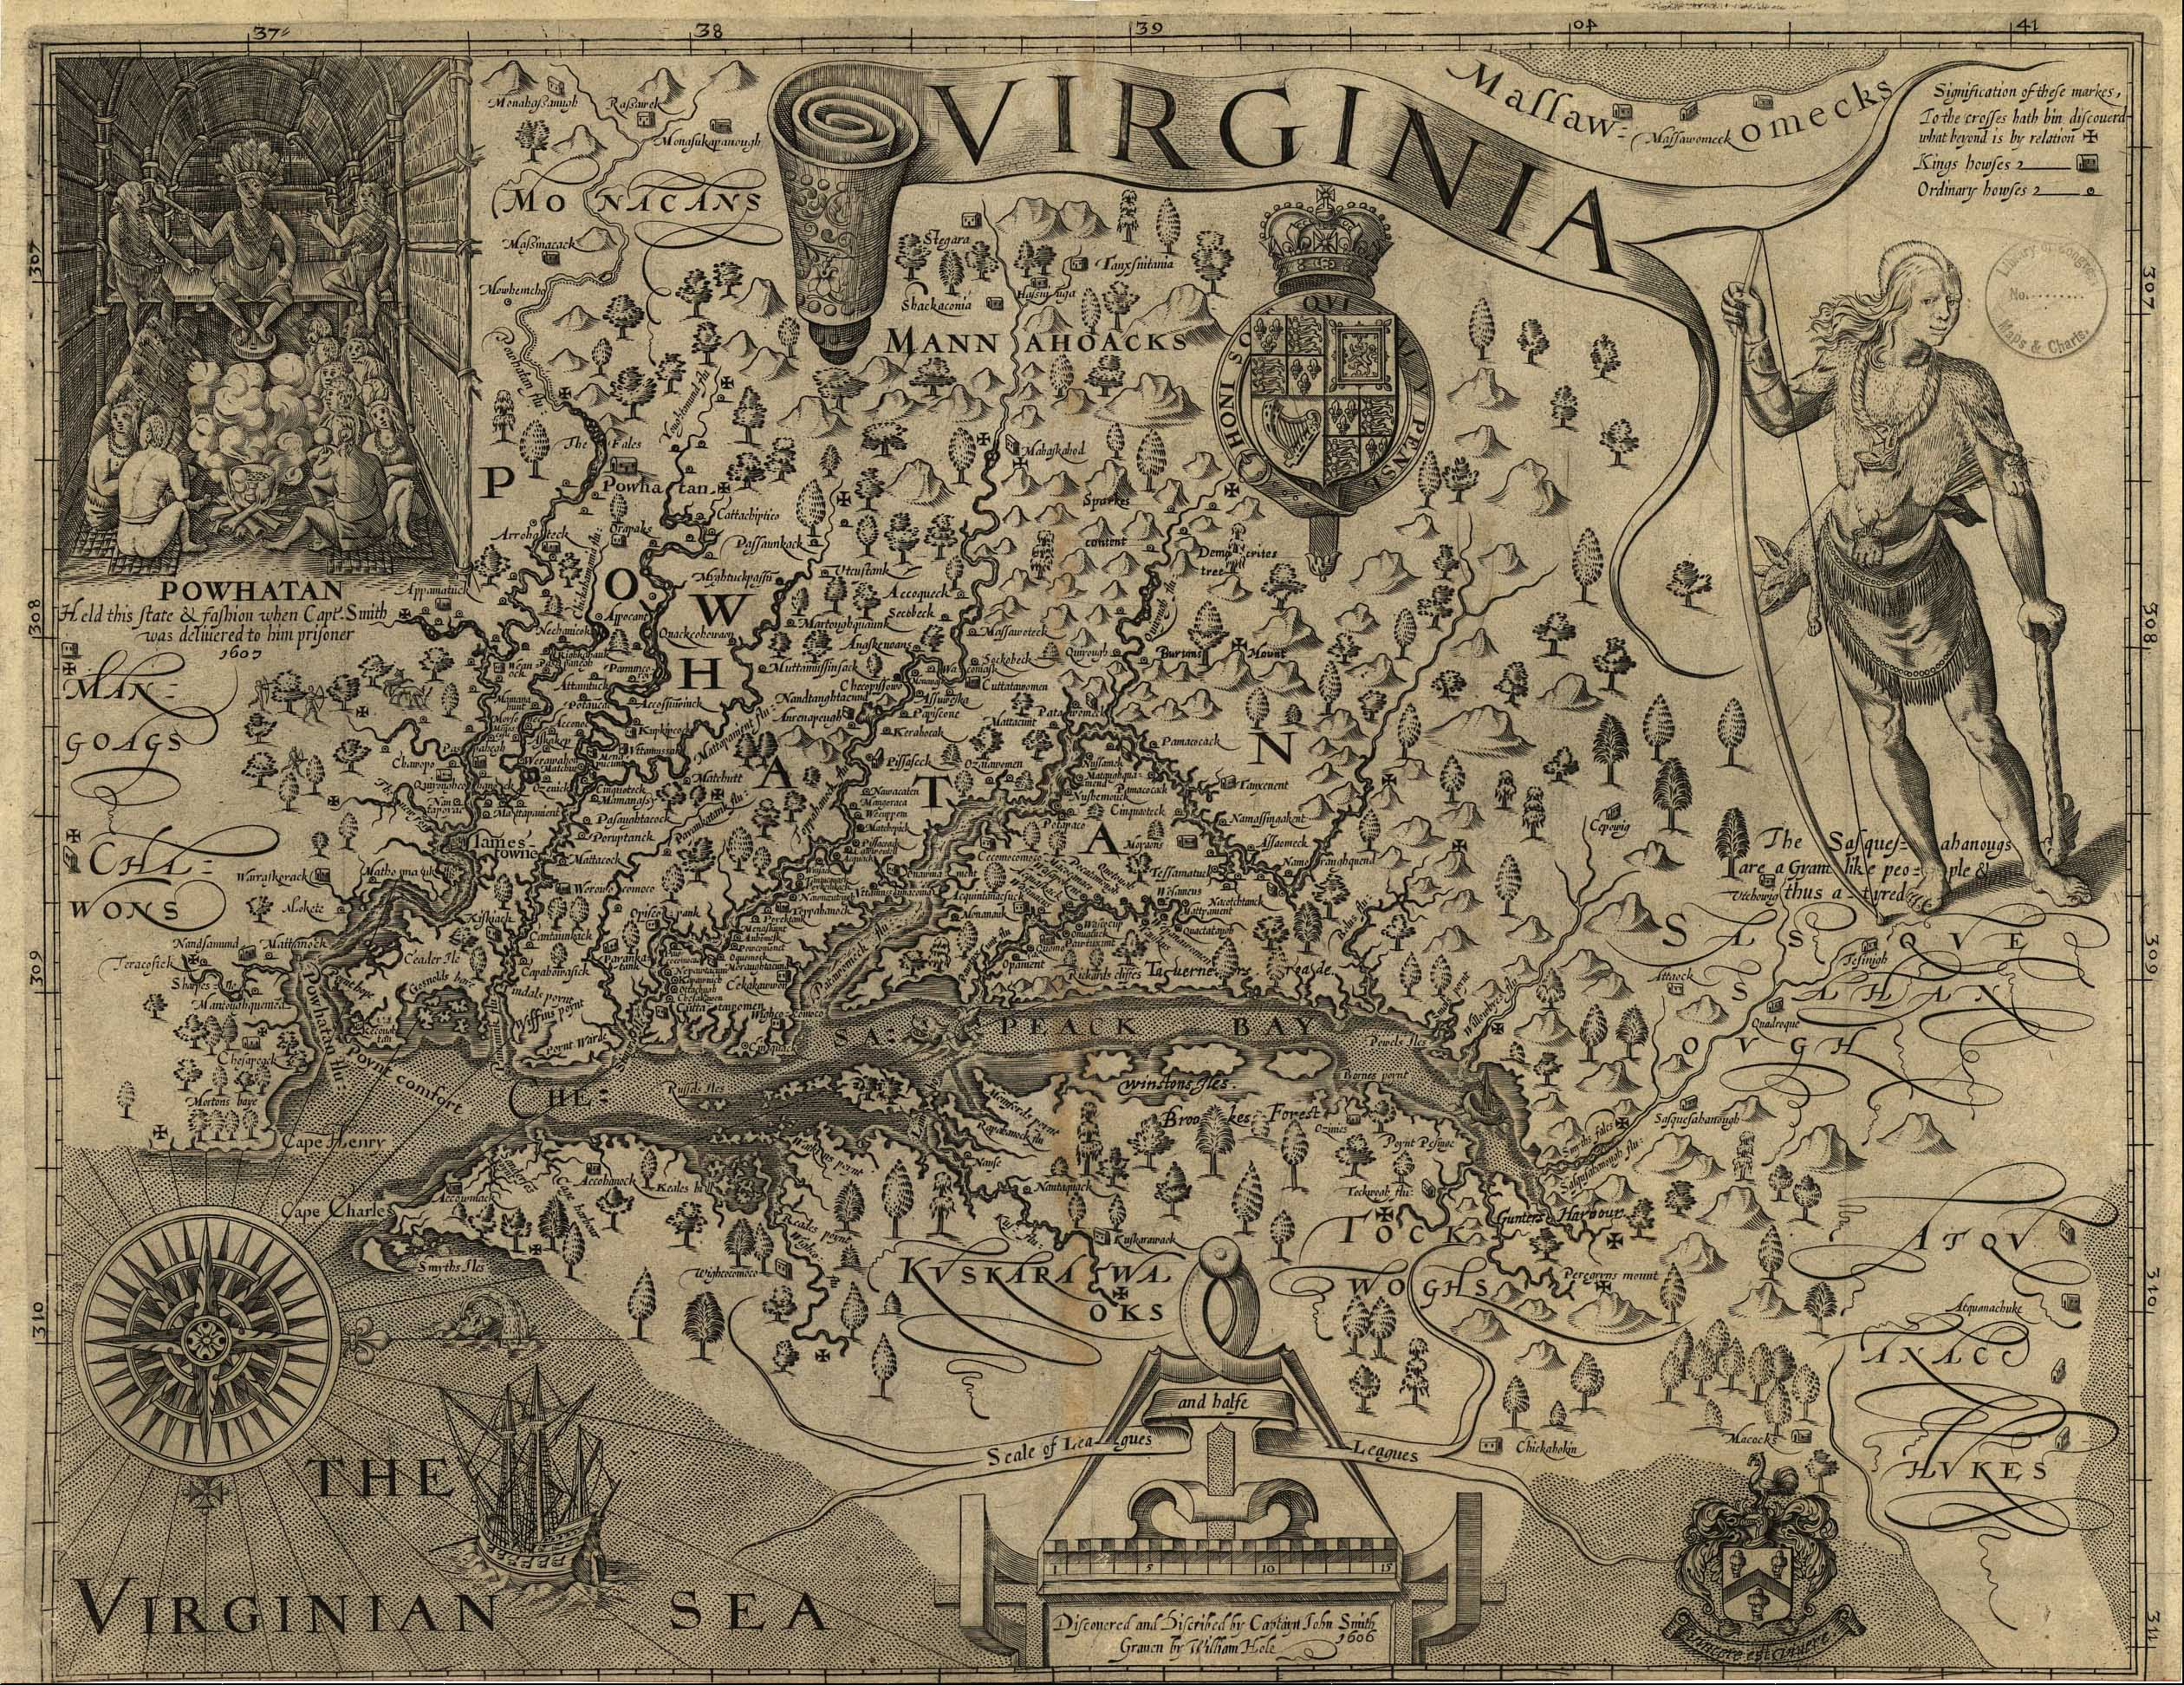 Virginia Maps Virginia Digital Map Library Table Of Contents - Maps of virginia